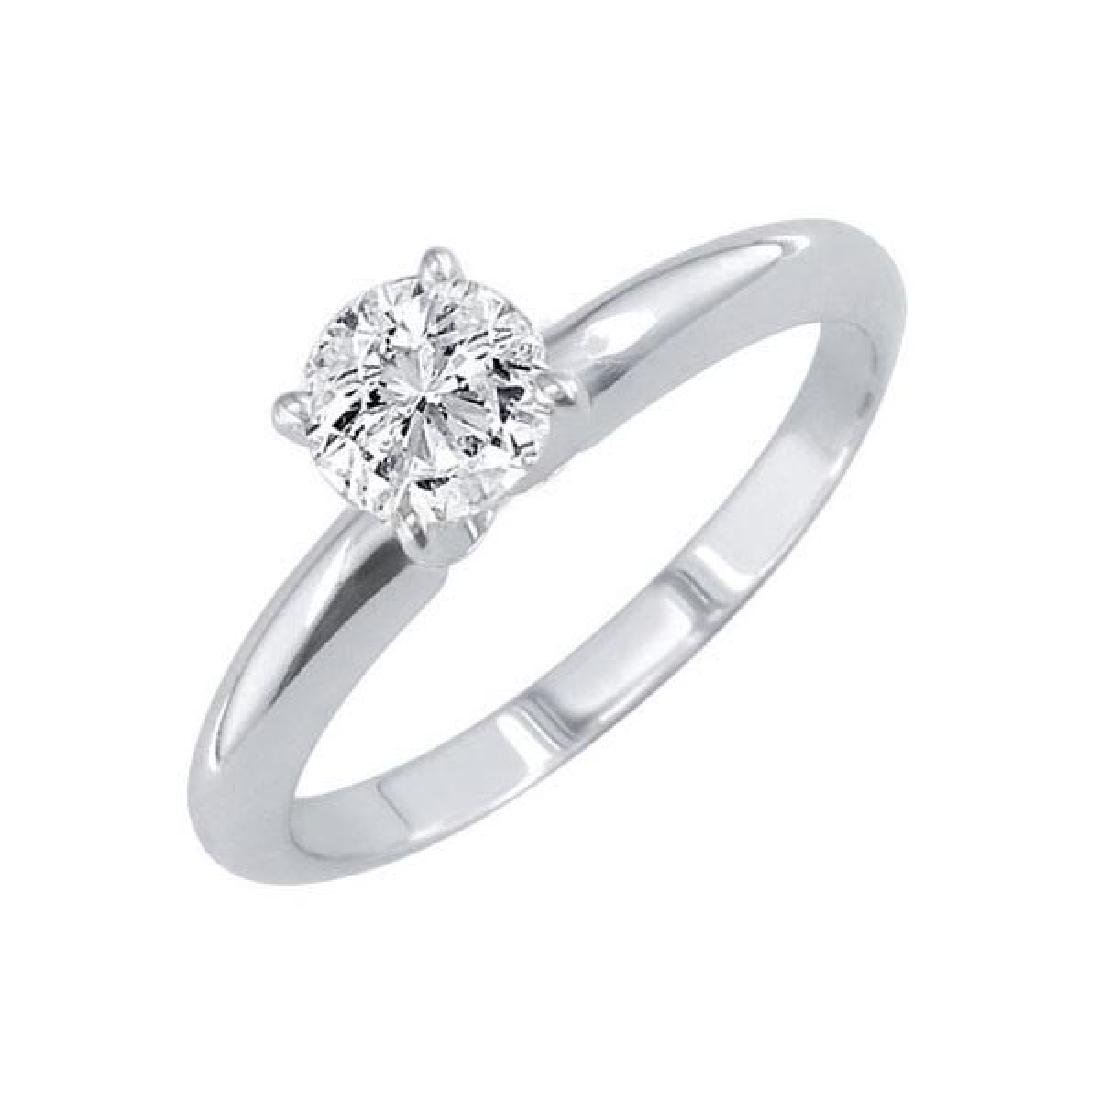 Certified 0.85 CTW Round Diamond Solitaire 14k Ring G/S